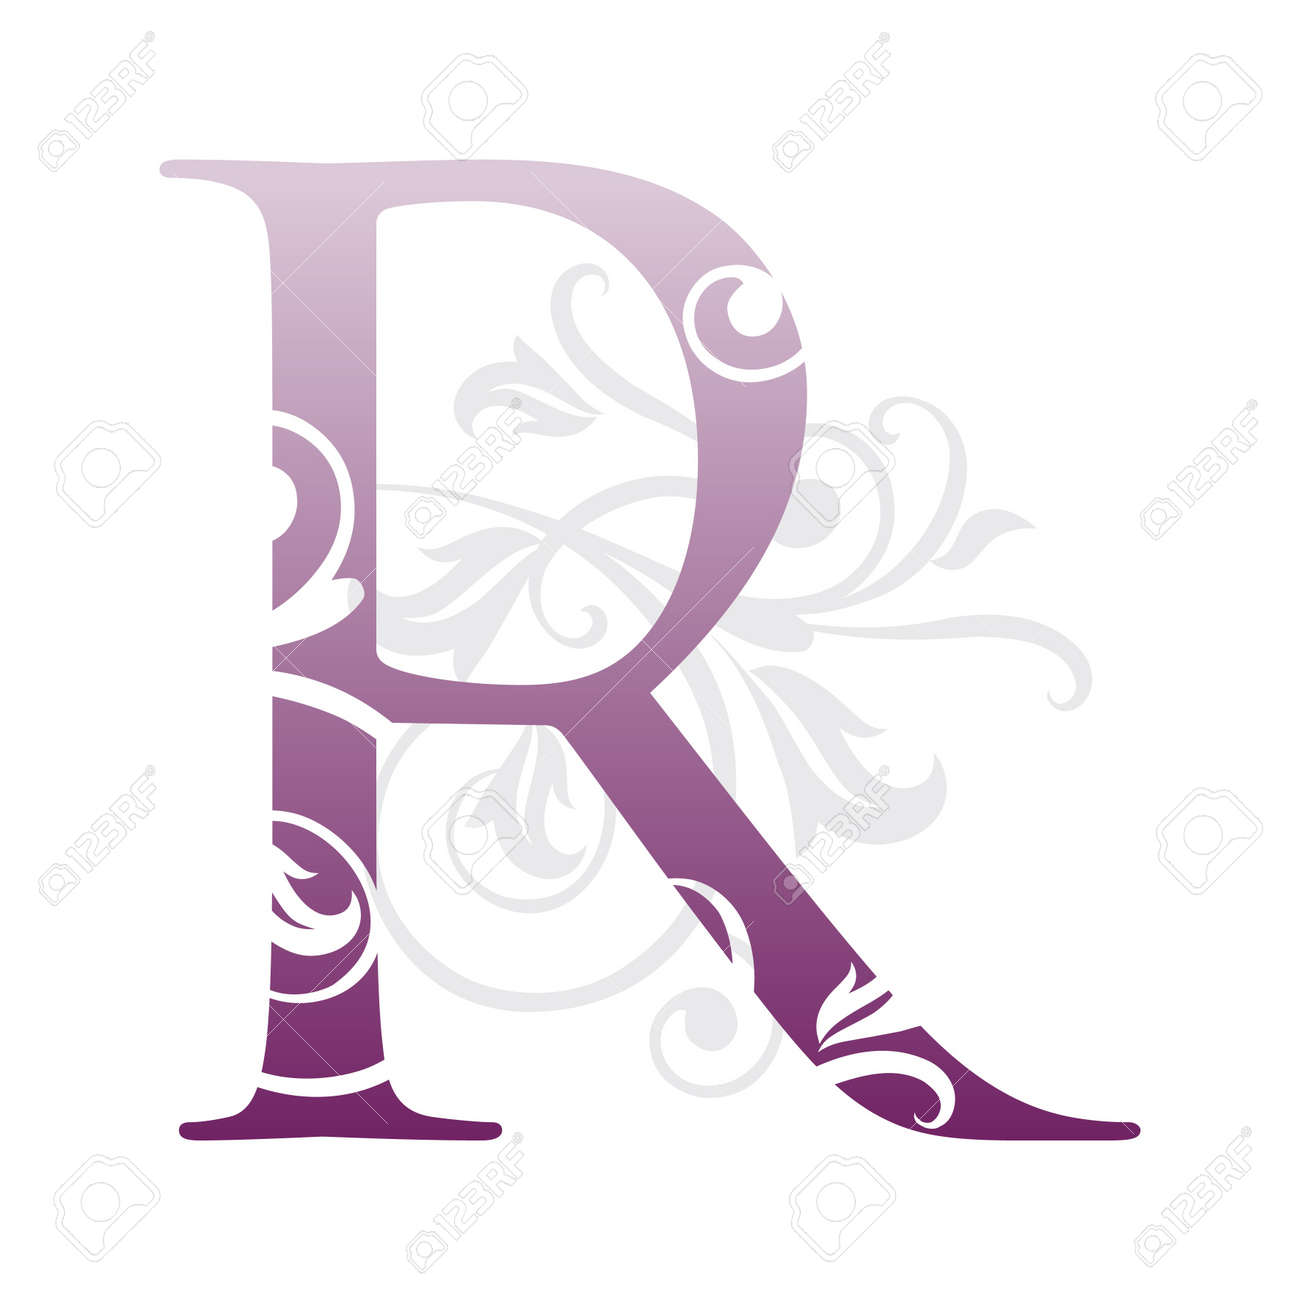 Letter r typography royalty free cliparts vectors and stock letter r typography stock vector 7923892 thecheapjerseys Image collections